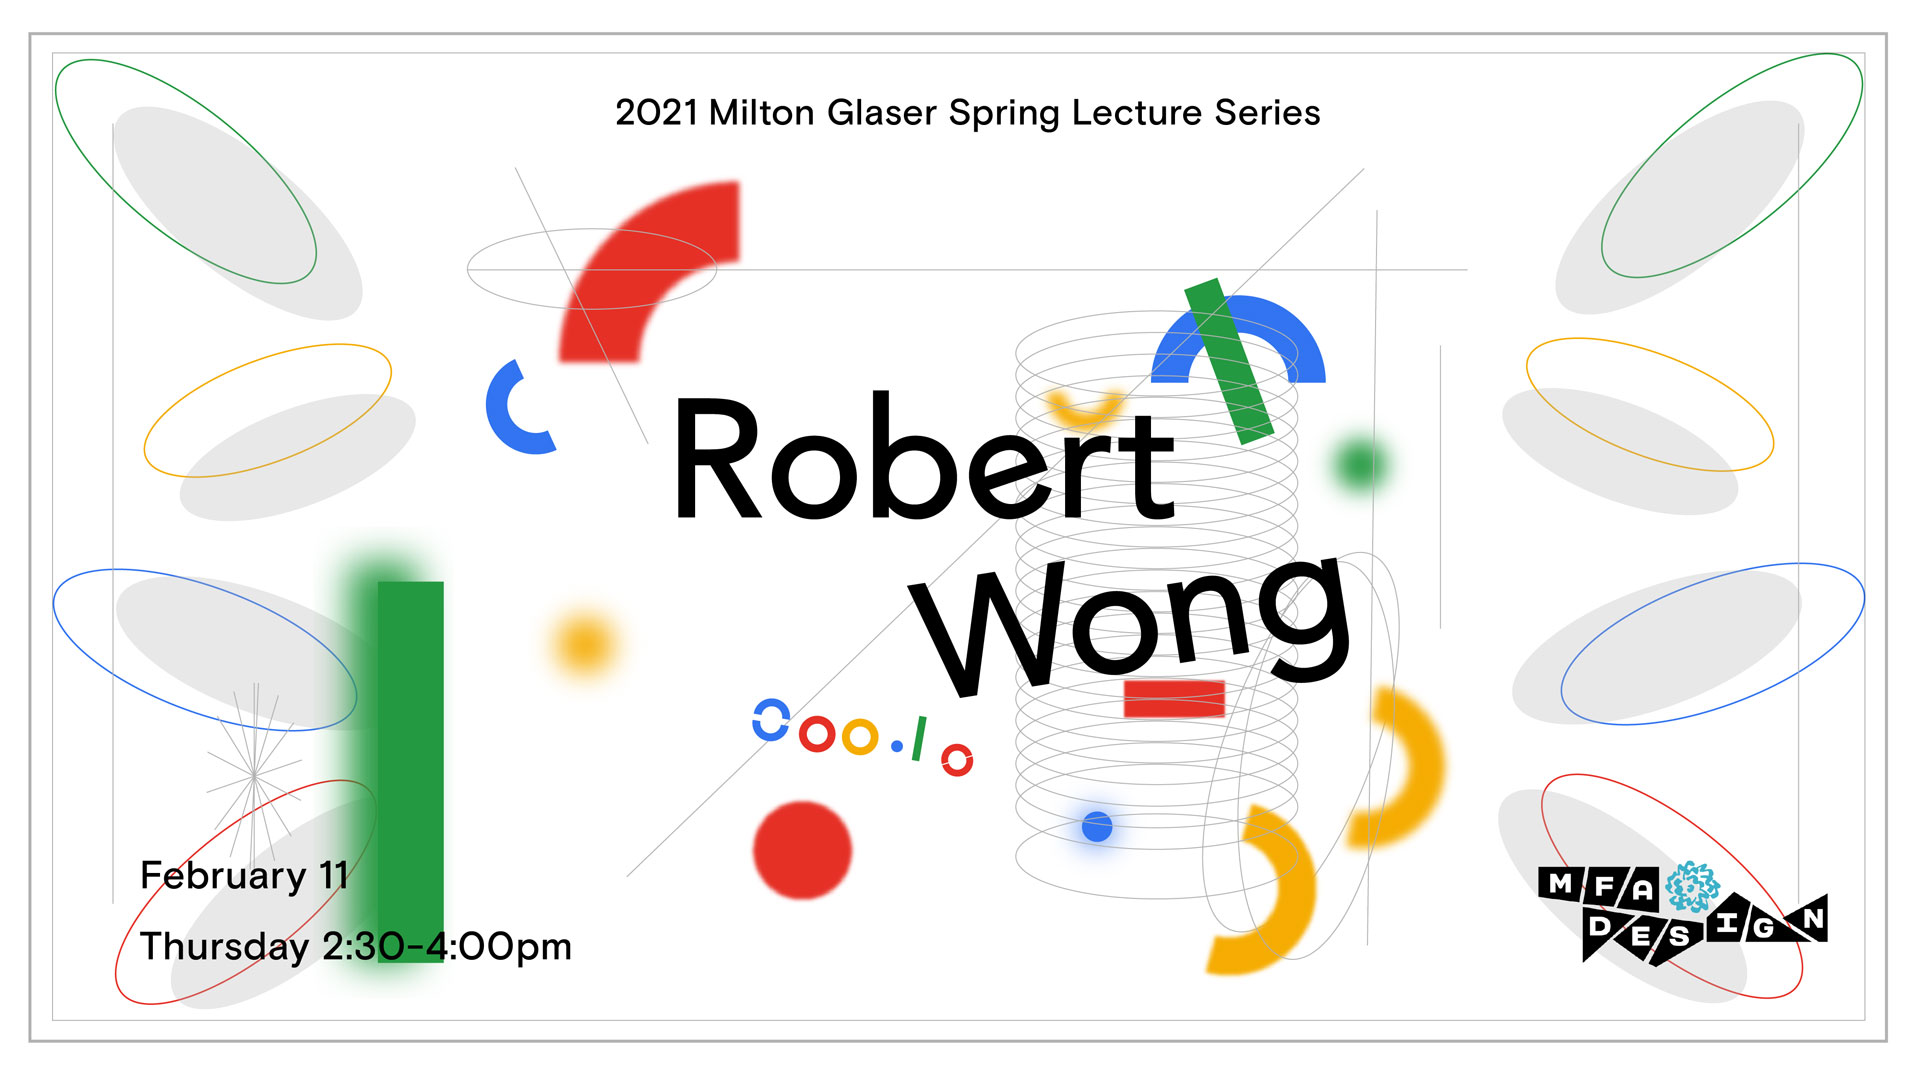 Robert Wong Poster by Sue Young Kim colorful springs and shapes in primary colors